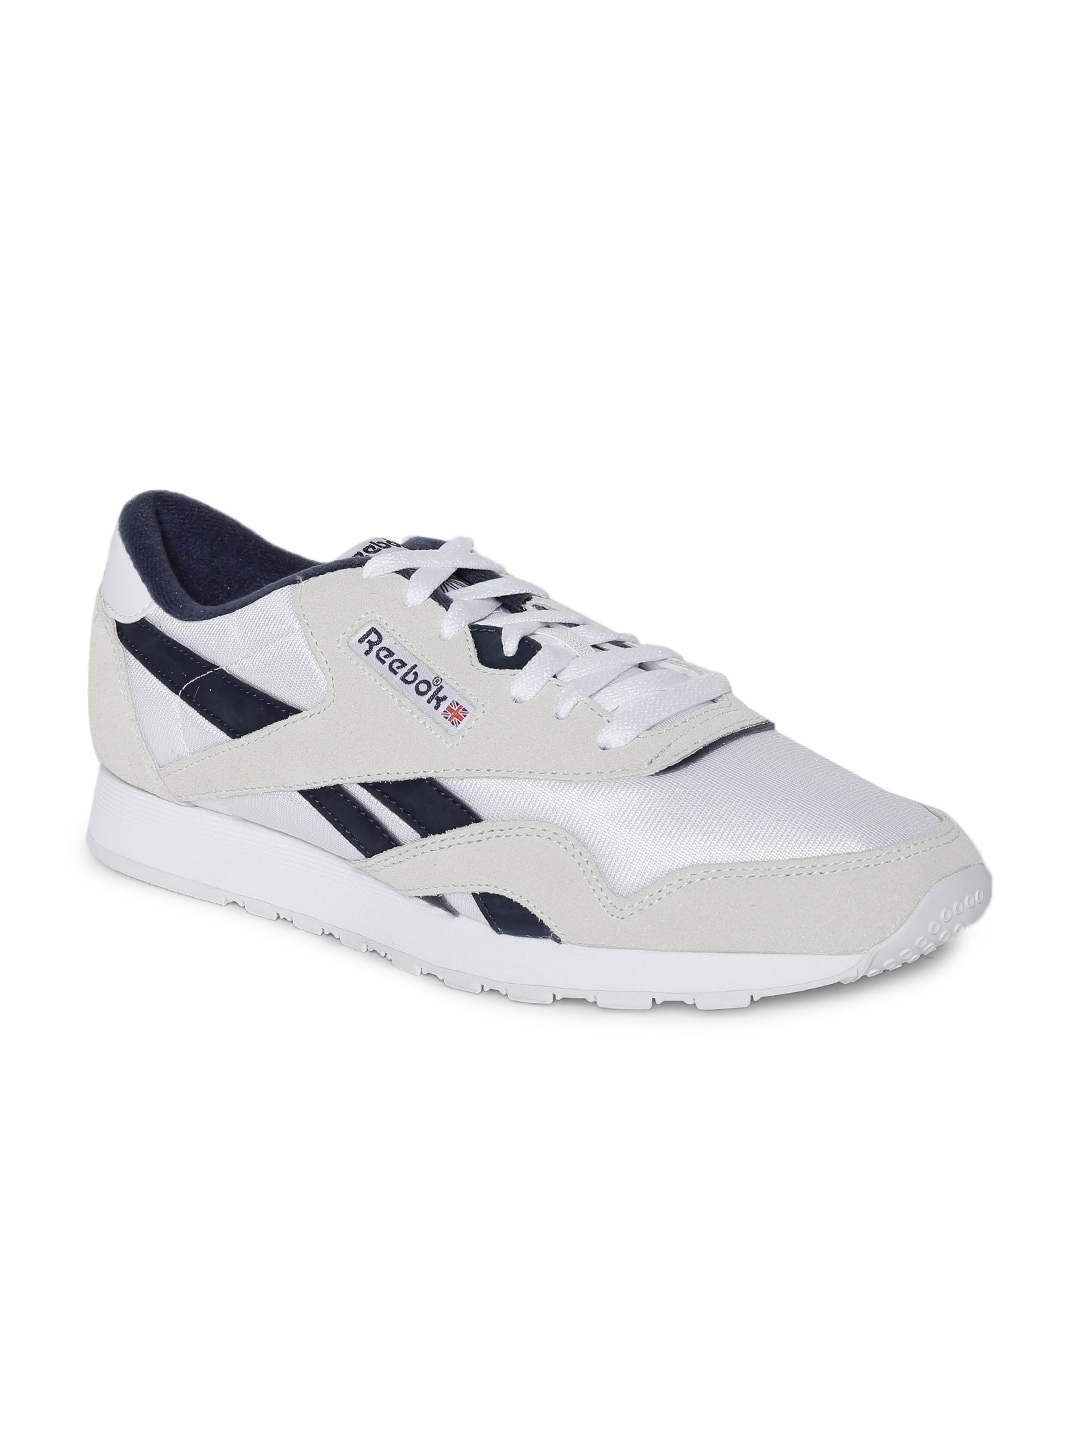 6a618ca2b50b08 Reebok Classic Shoes - Buy Reebok Classic Shoes online in India